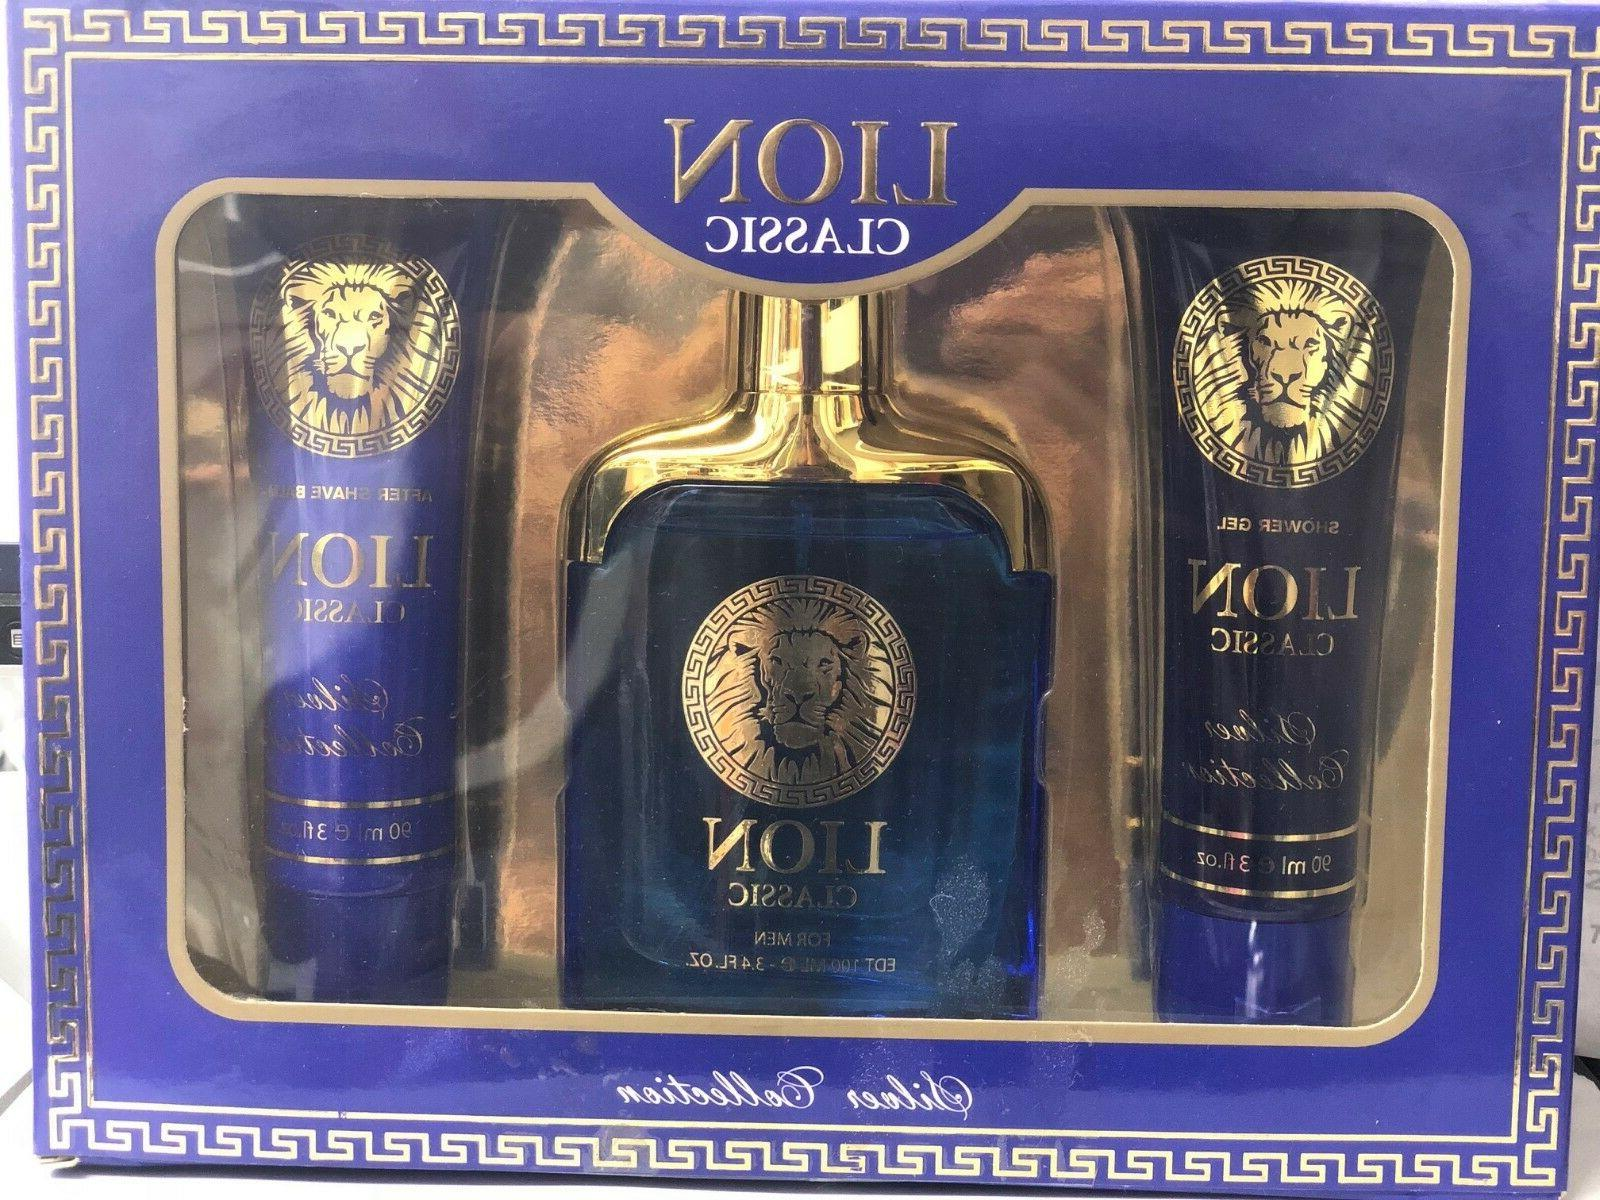 LION PLATINUM FOR MEN 3 PC SET 3.4OZ SPRAY +3OZ AFTER SHAVE